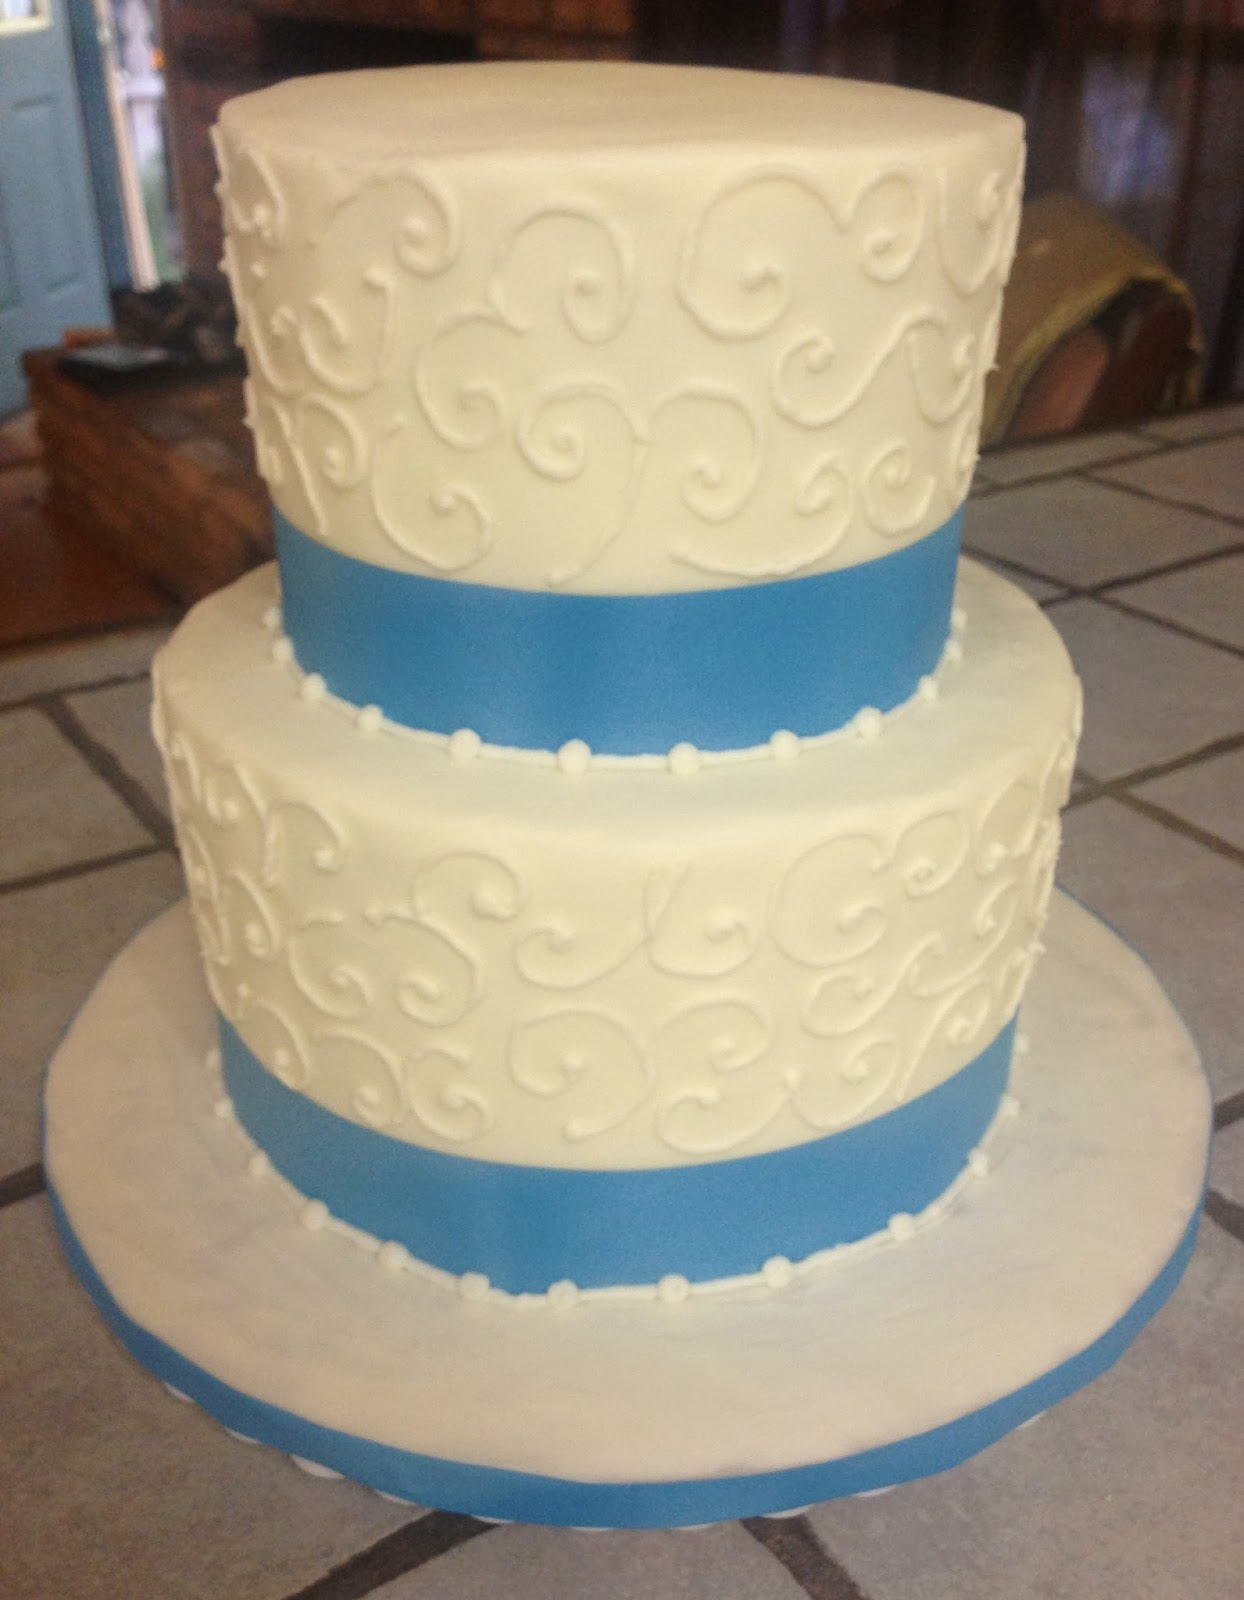 Cakes by Mindy: 2 Tiered Wedding Cake 6\